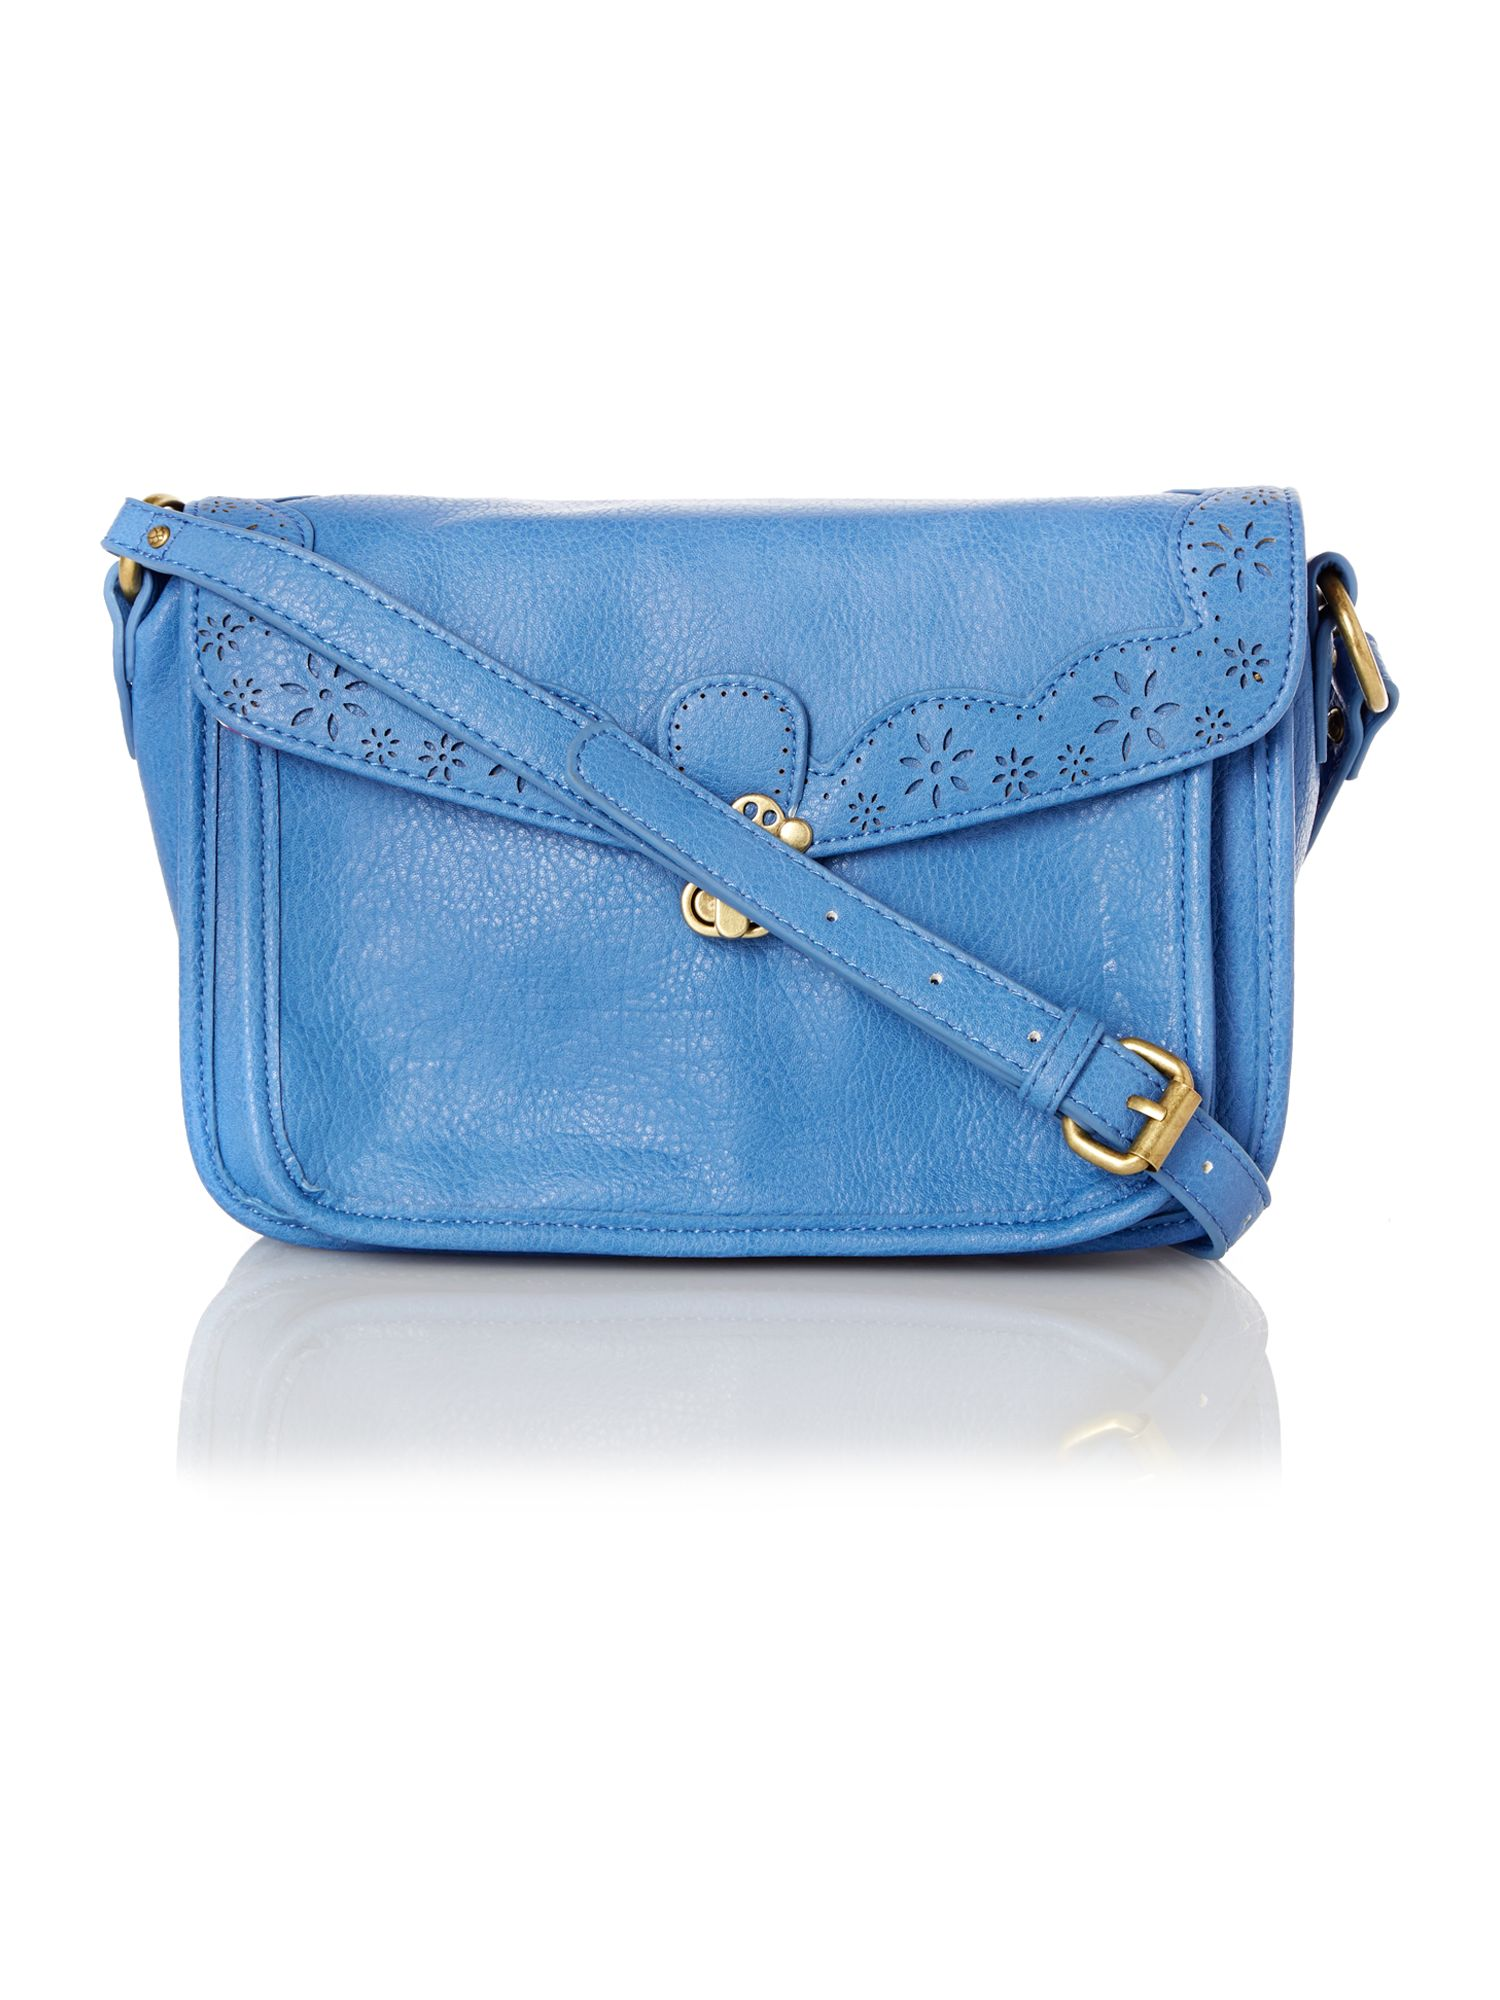 Alicia blue medium satchel bag